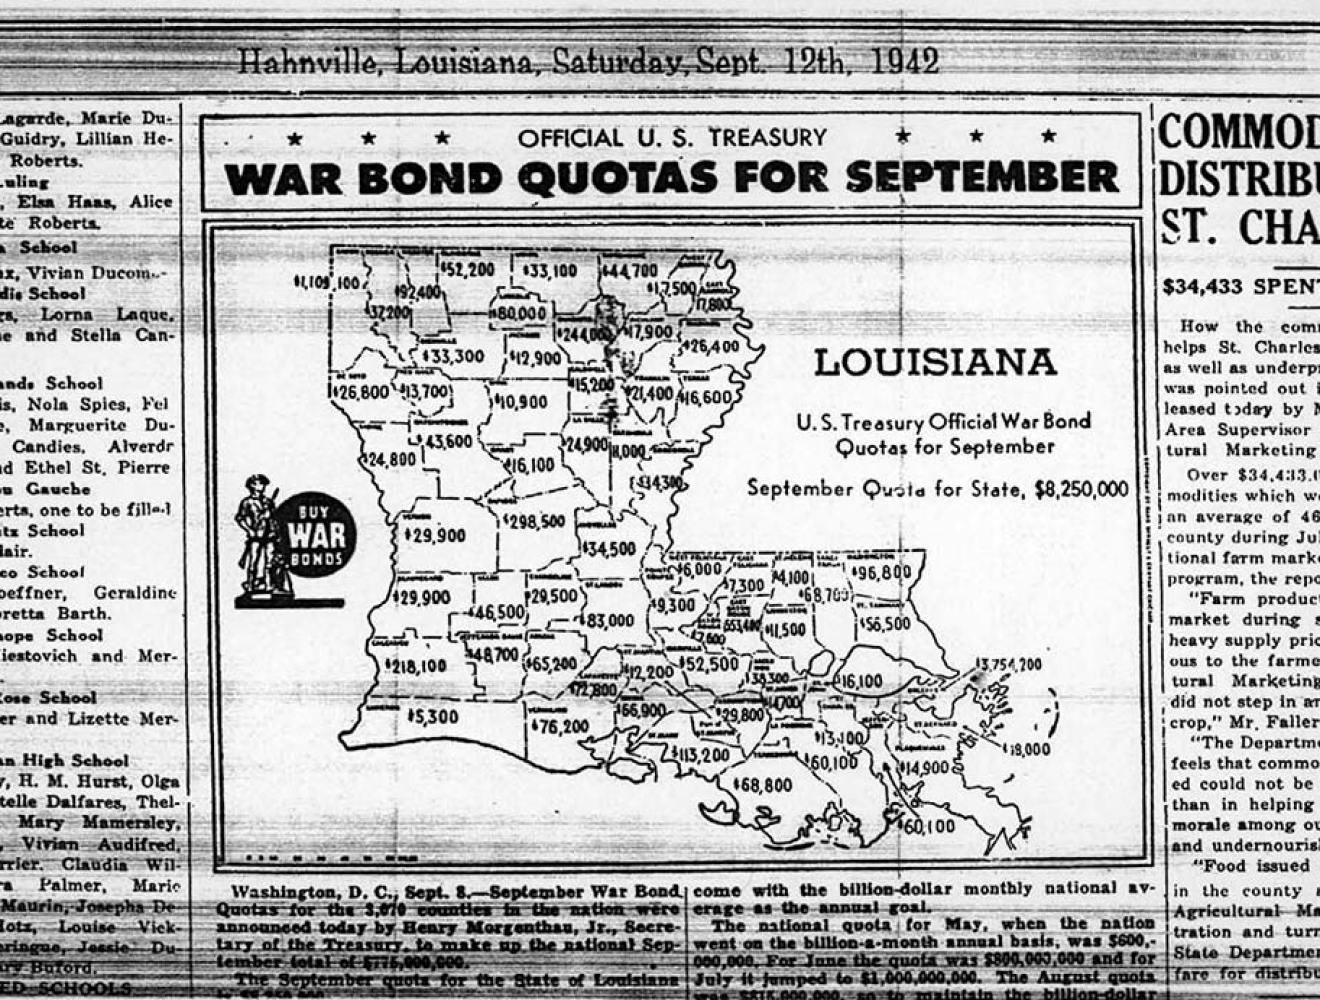 War Bond Quotas